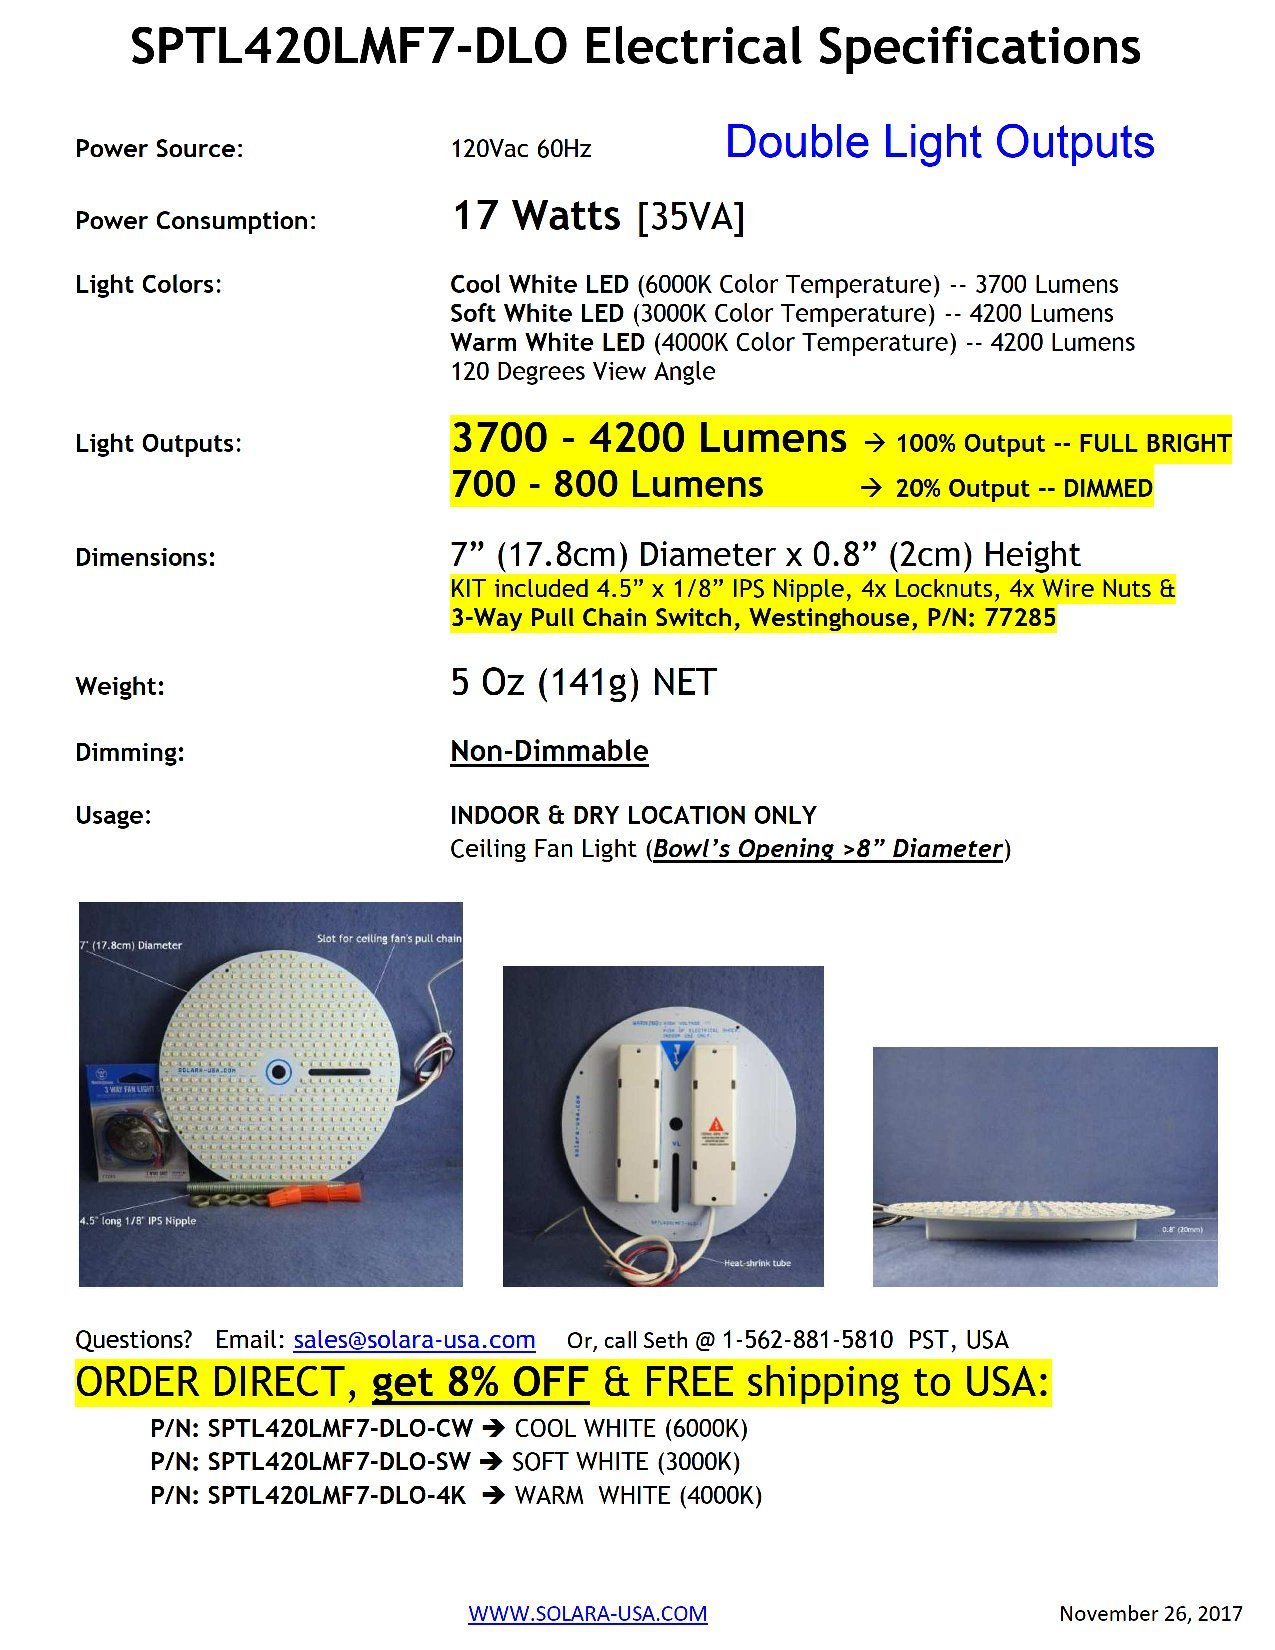 Dual Light Output - 7'' Diameter VERY BRIGHT COOL WHITE (6000K) LED Panel for Ceiling Fan Light -- 3700Lumens 17Watts 120Vac. Secondary DIMMED (20%) Output. P/N: SPTL420LMF7-DLO-CW by SOLARA-USA (Image #7)